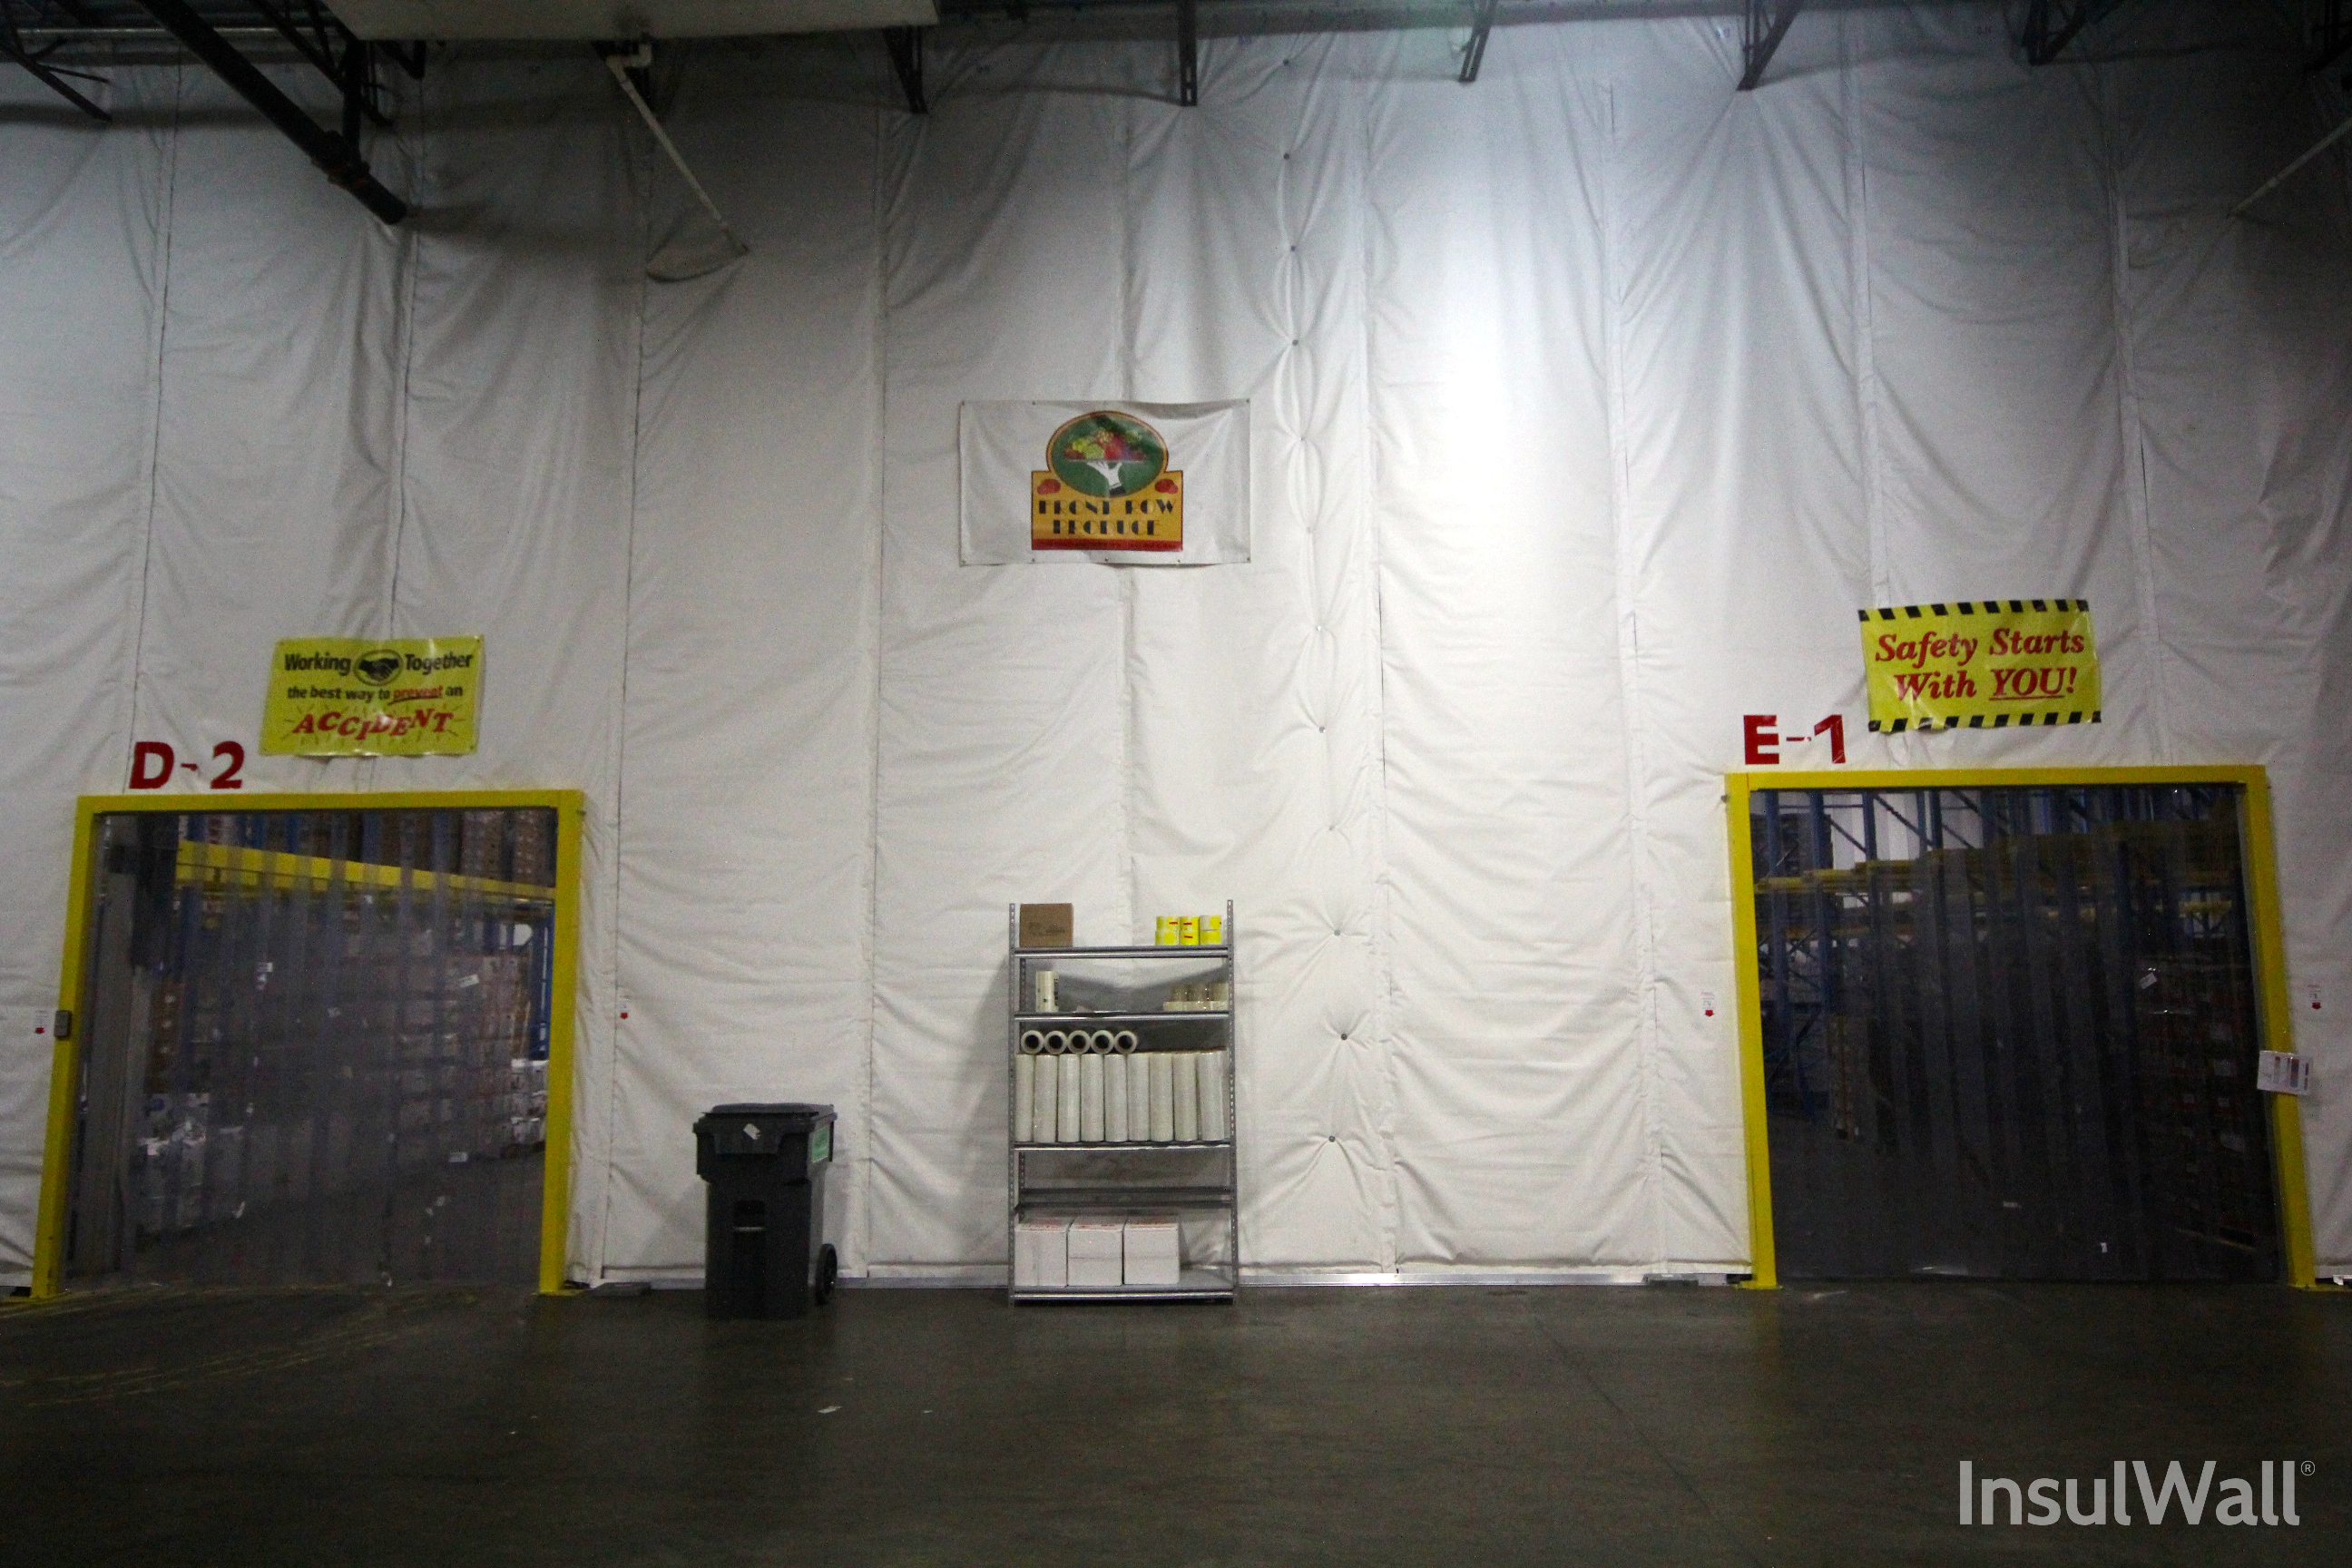 Insulated curtains industrial - Randall Insulwall Insulated Warehouse Curtain Wall At Food Distributor Www Randallmfg